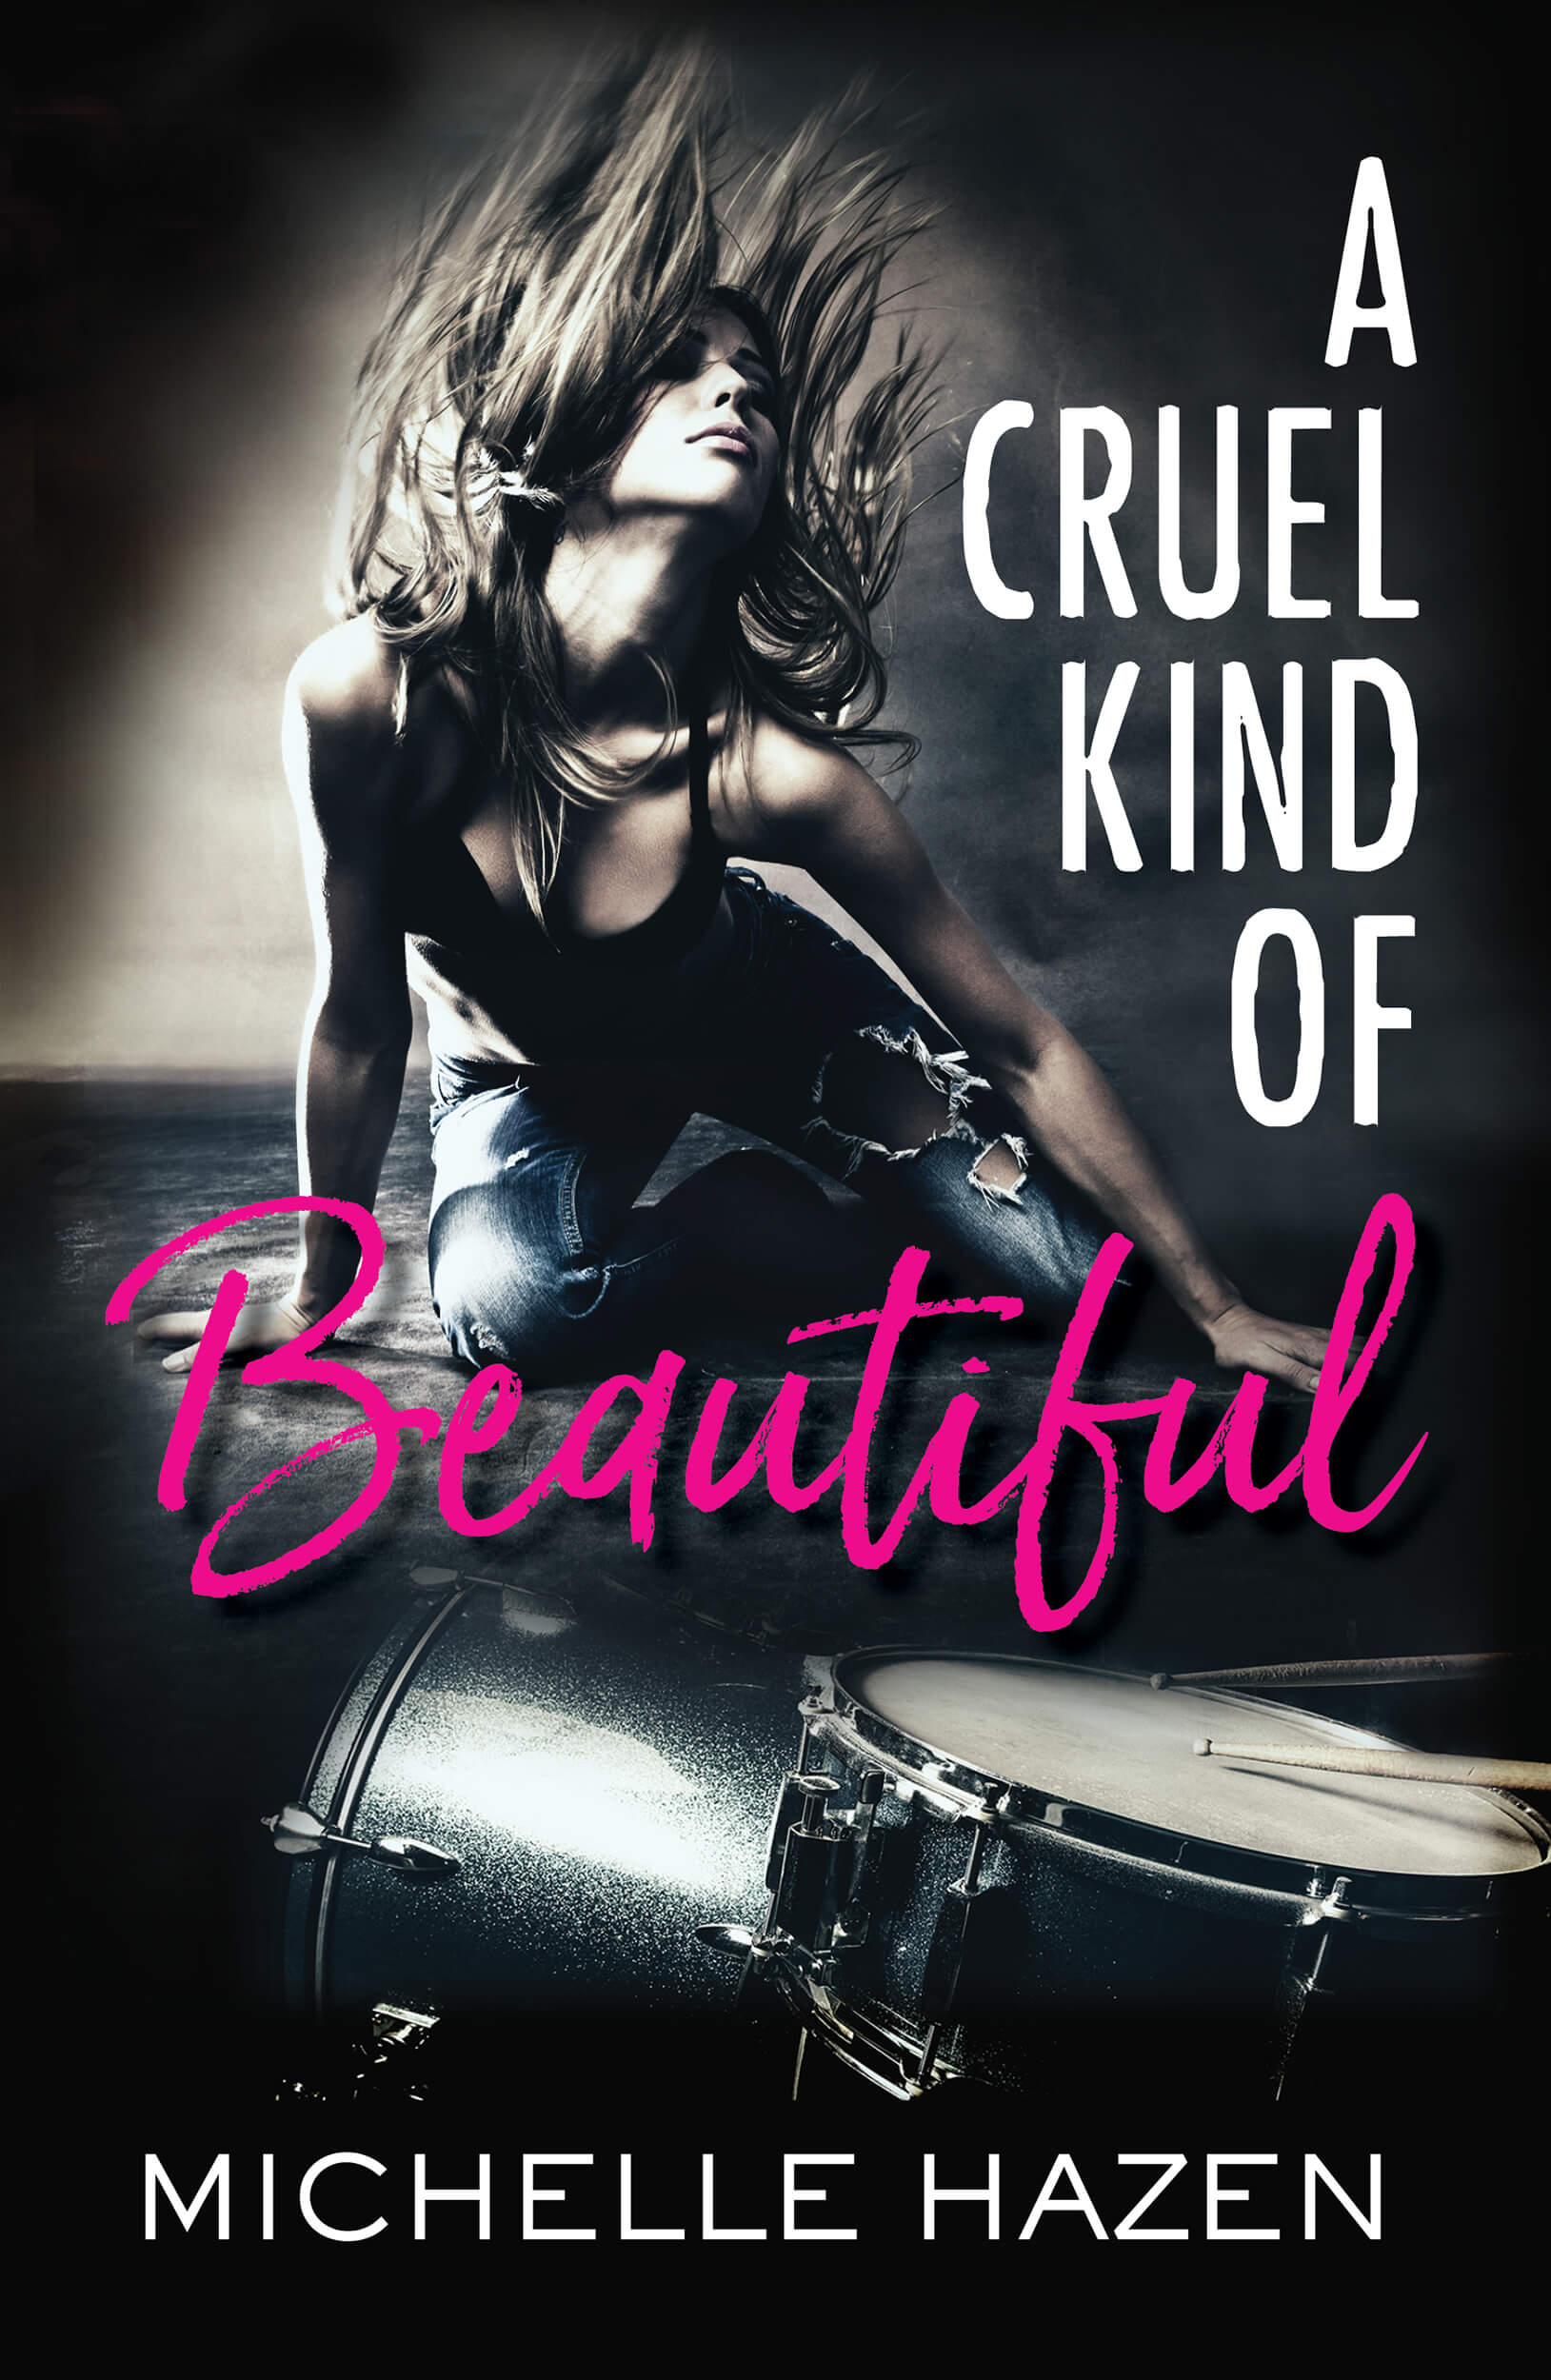 Blogtour and Giveaway: A Cruel Kind of Beautiful – Michelle Hazen